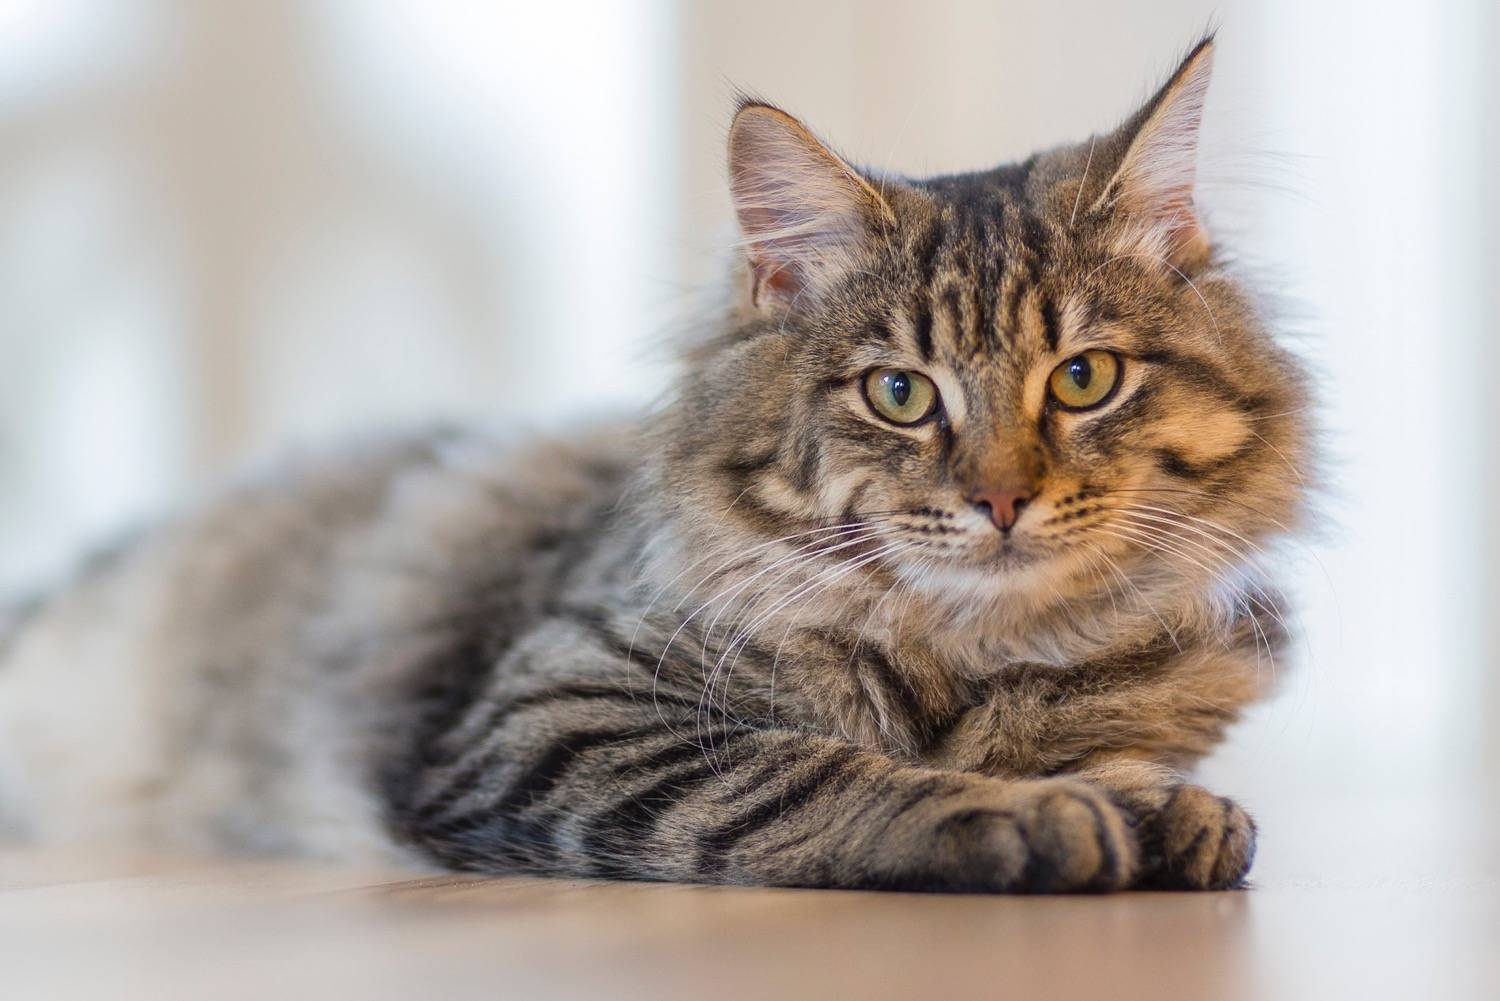 Top tips for getting your cat to the vet